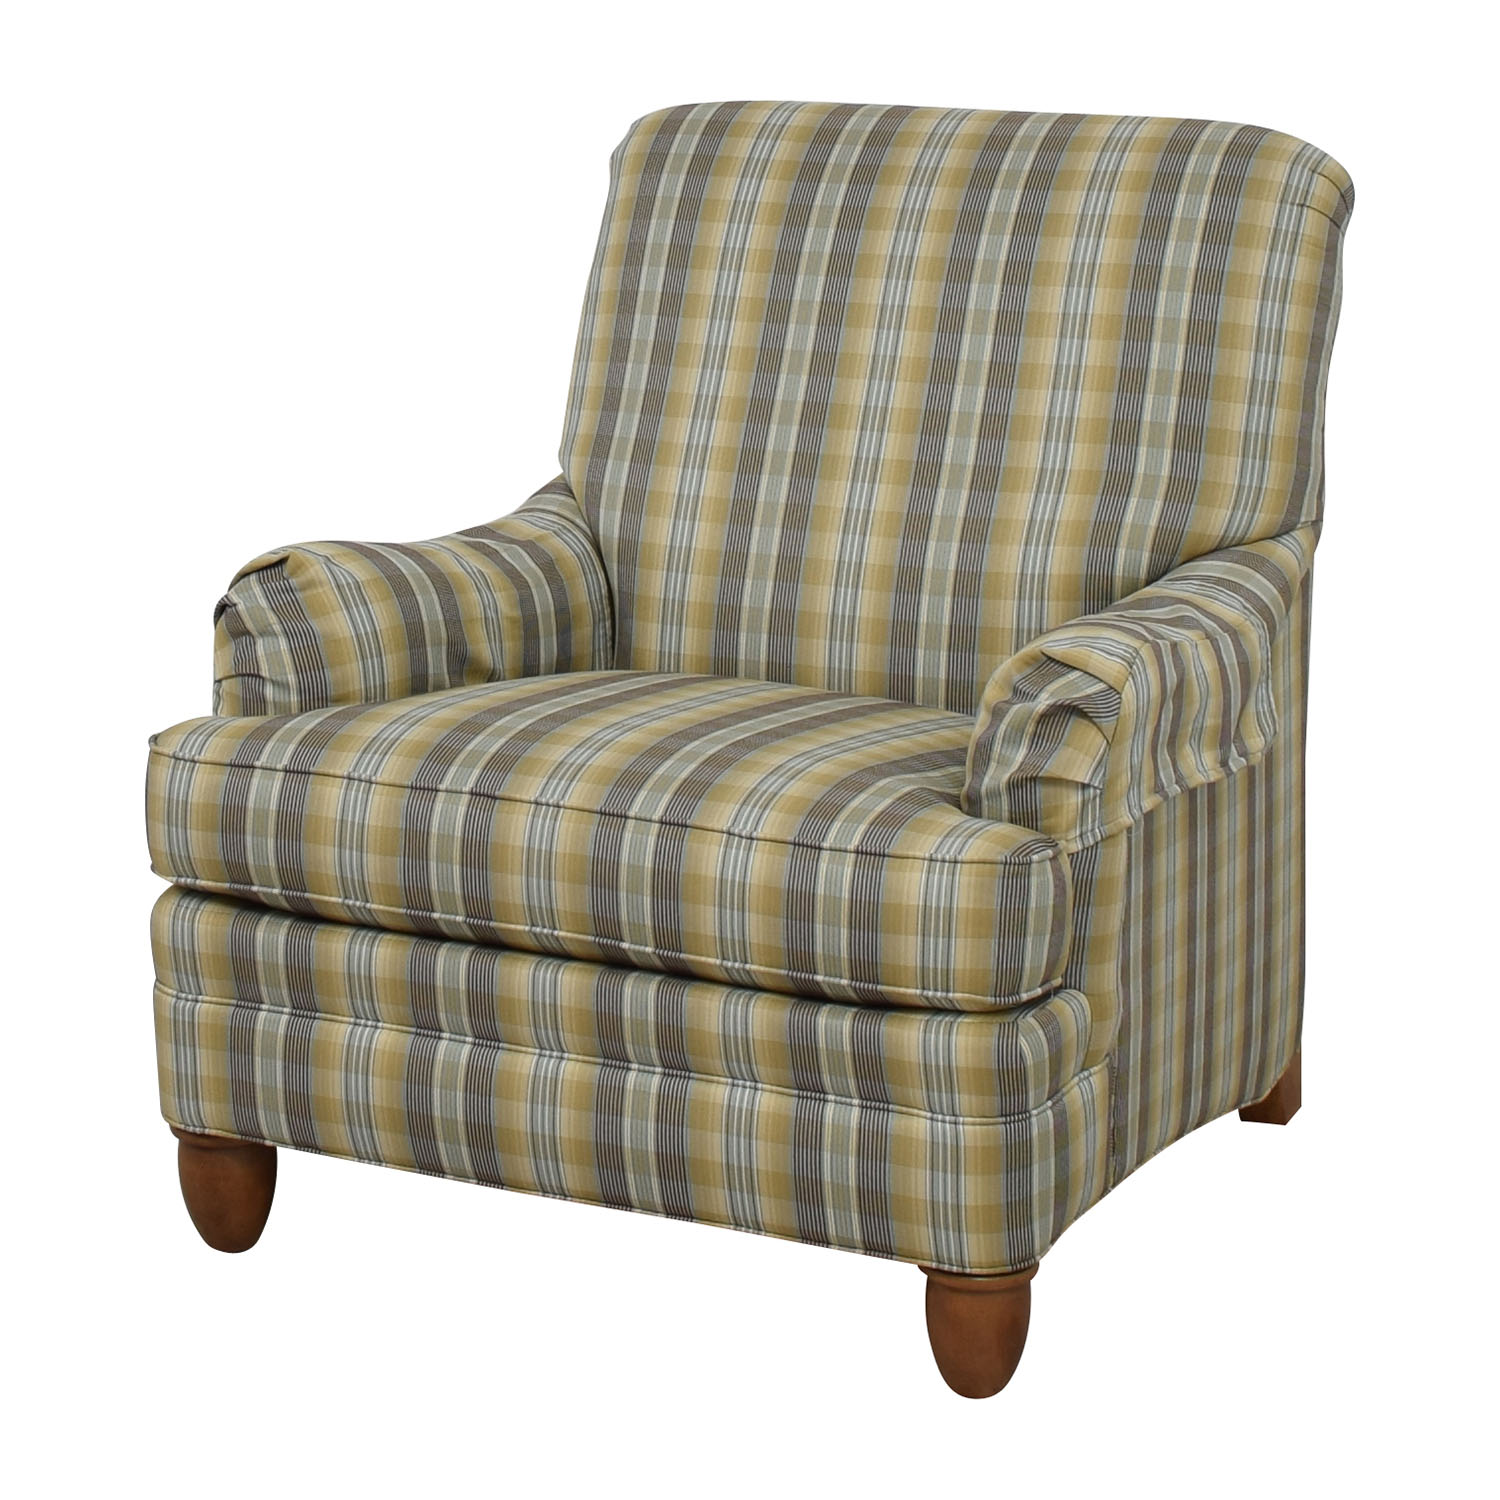 Plaid Chair 79 Off Ethan Allen Ethan Allen Plaid Arm Chair Chairs